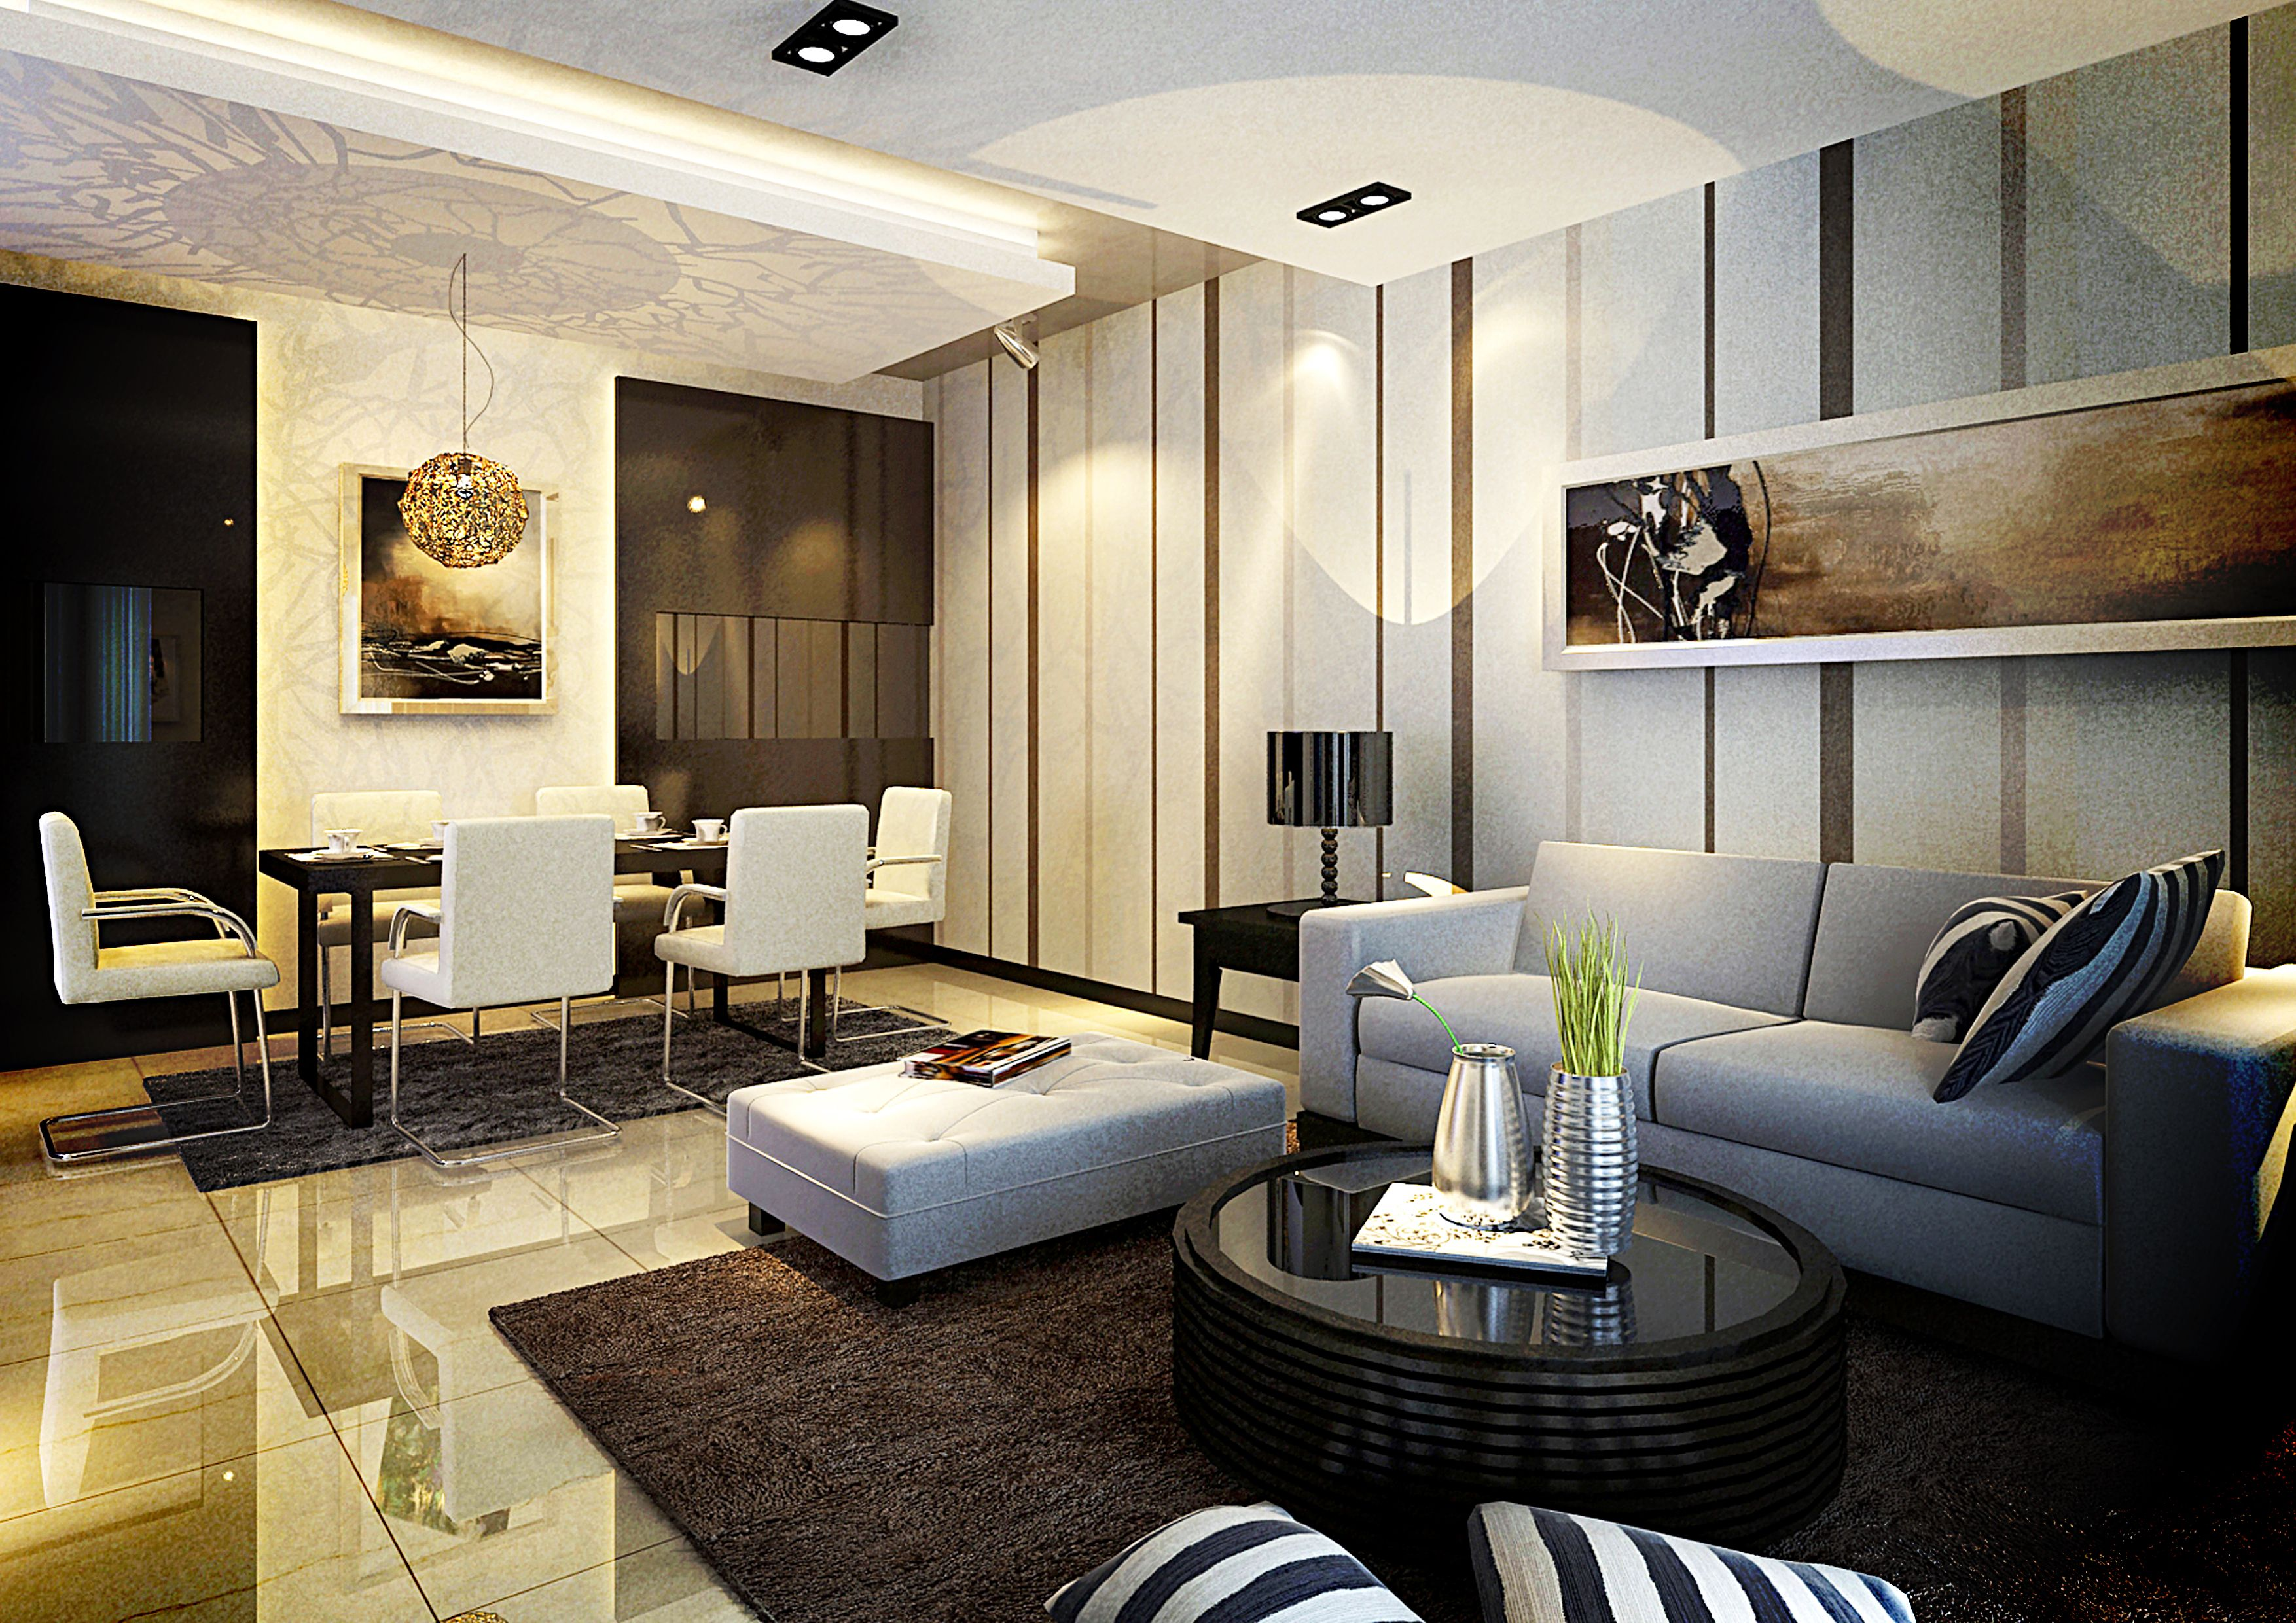 Elegant interior design in singapore interior design for Interior designs in home